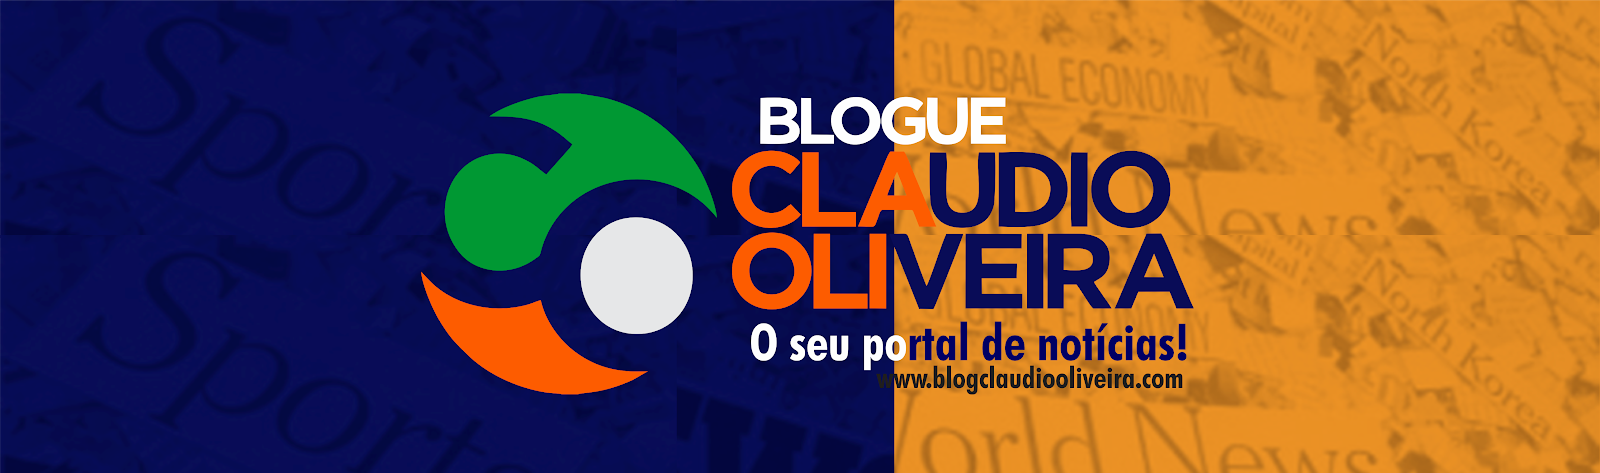 Blogue Claudio Oliveira